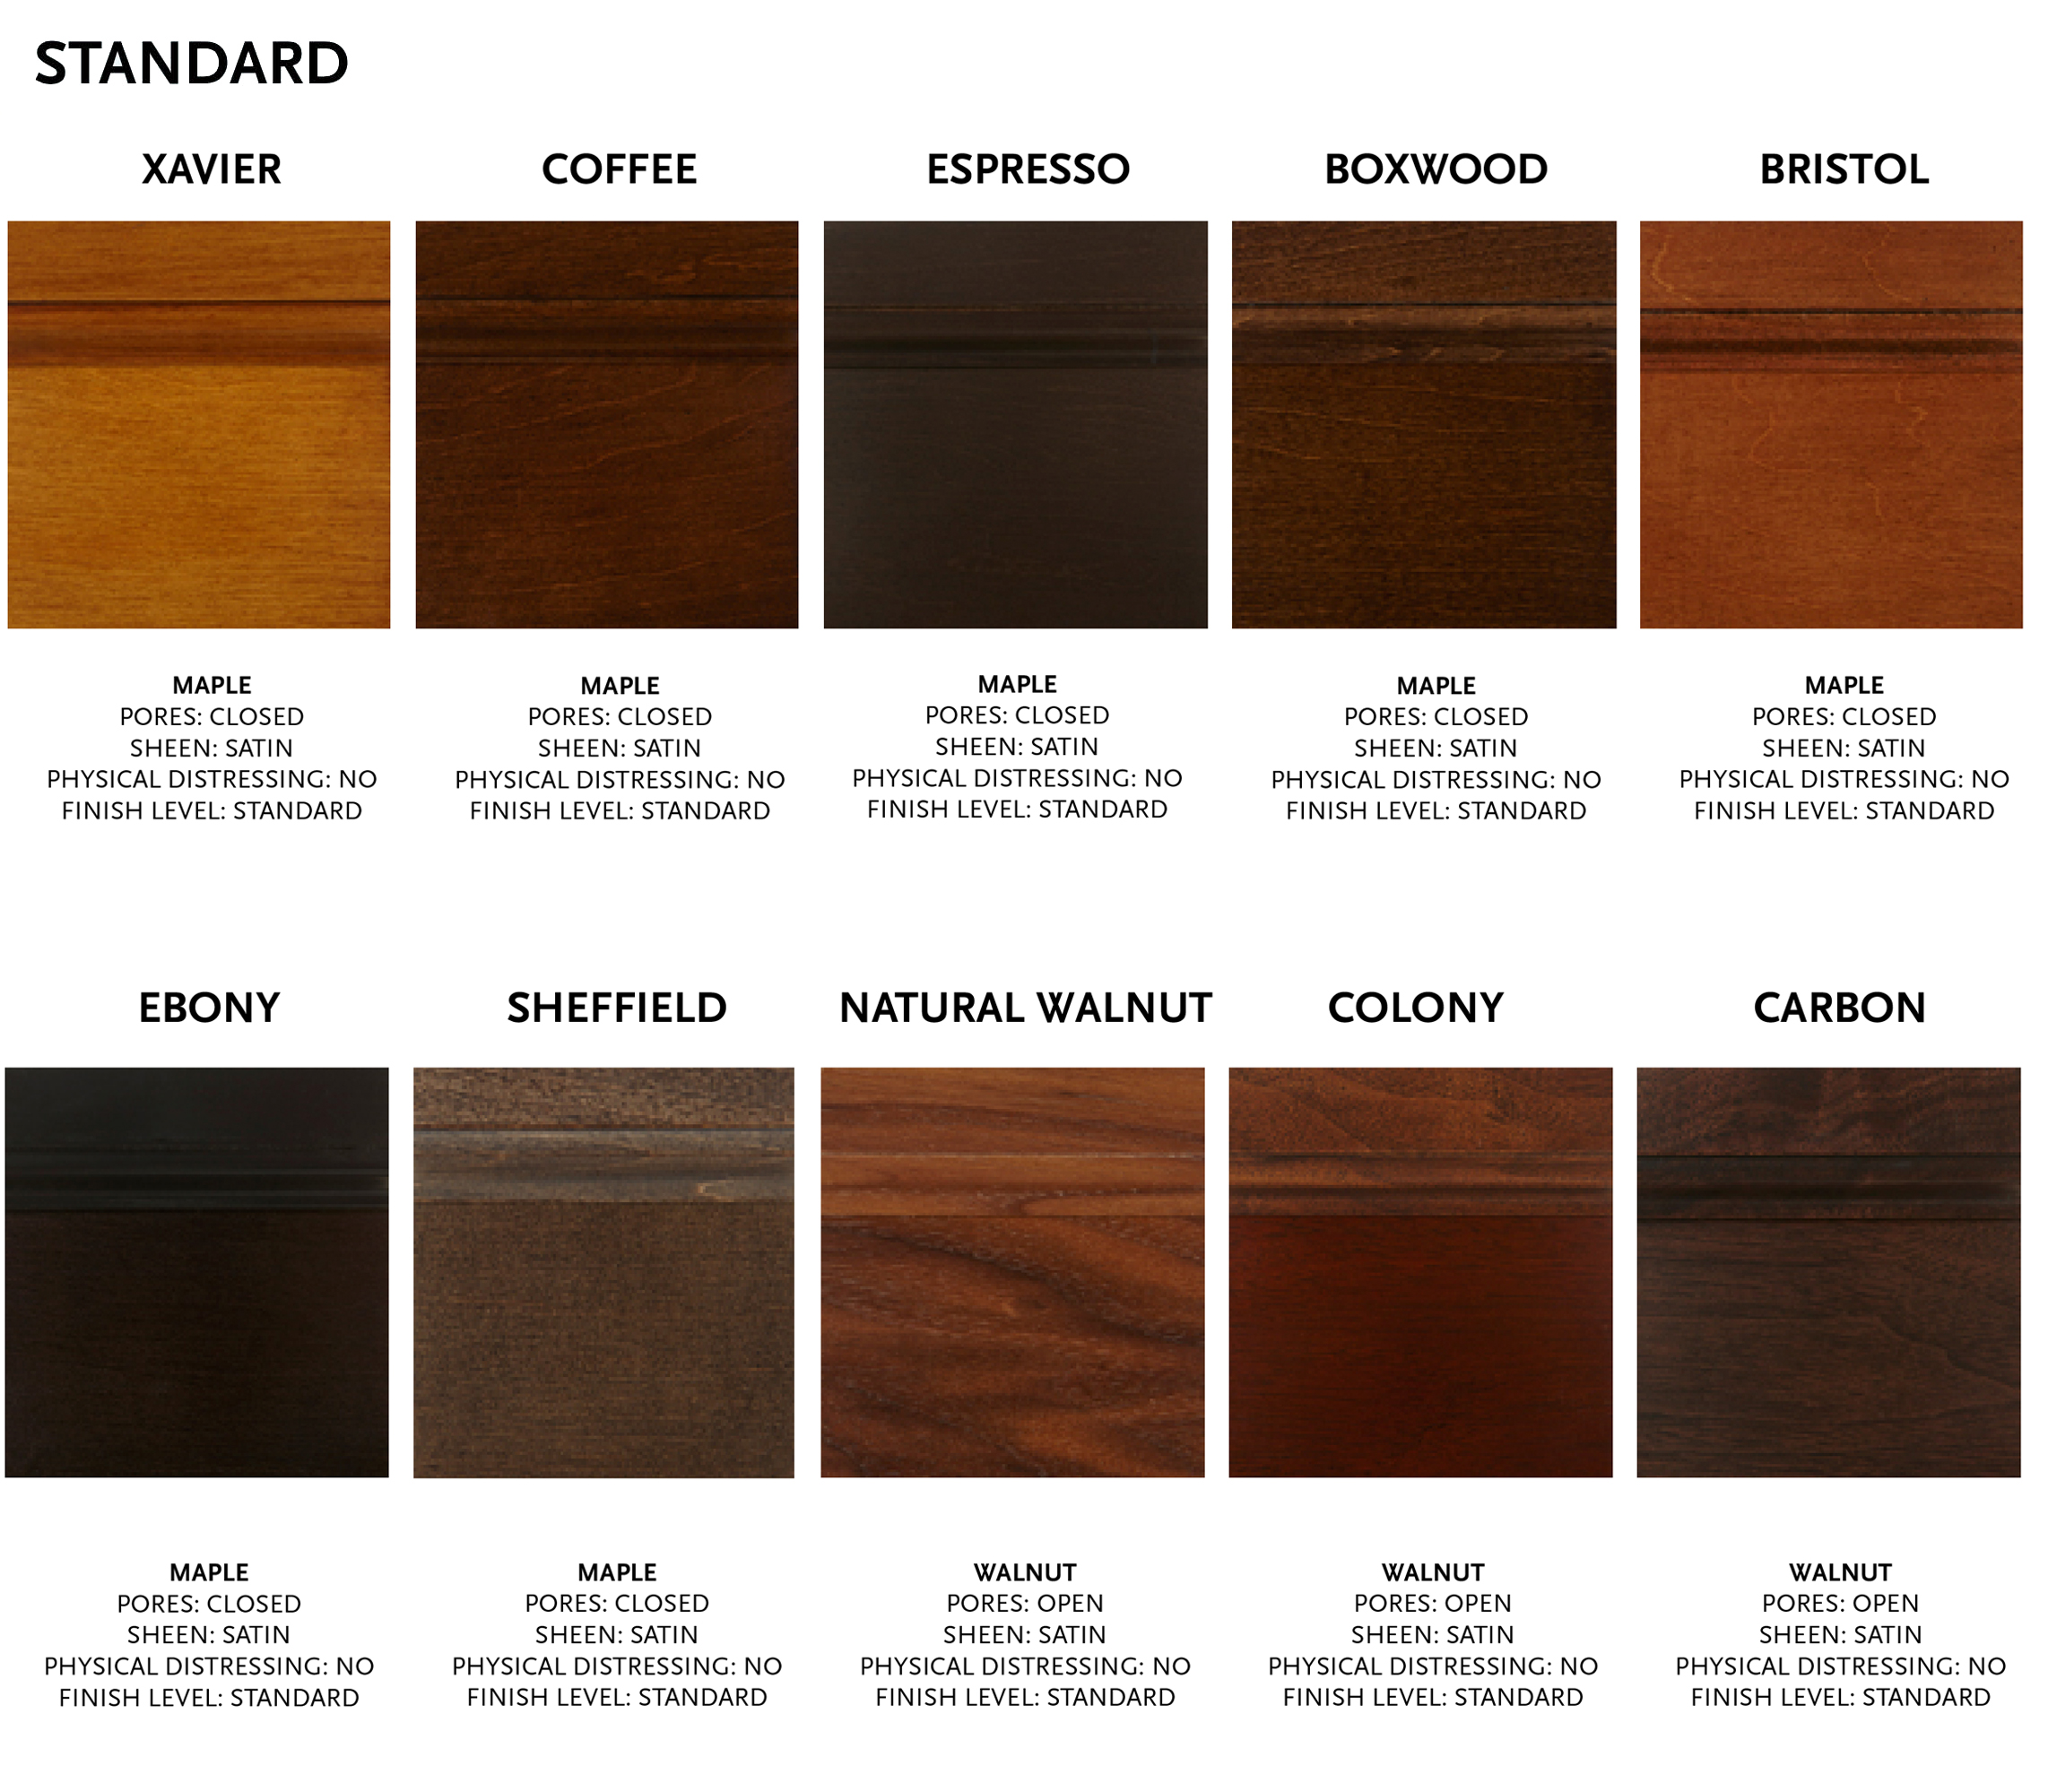 wood-finishes-image1-2.jpg